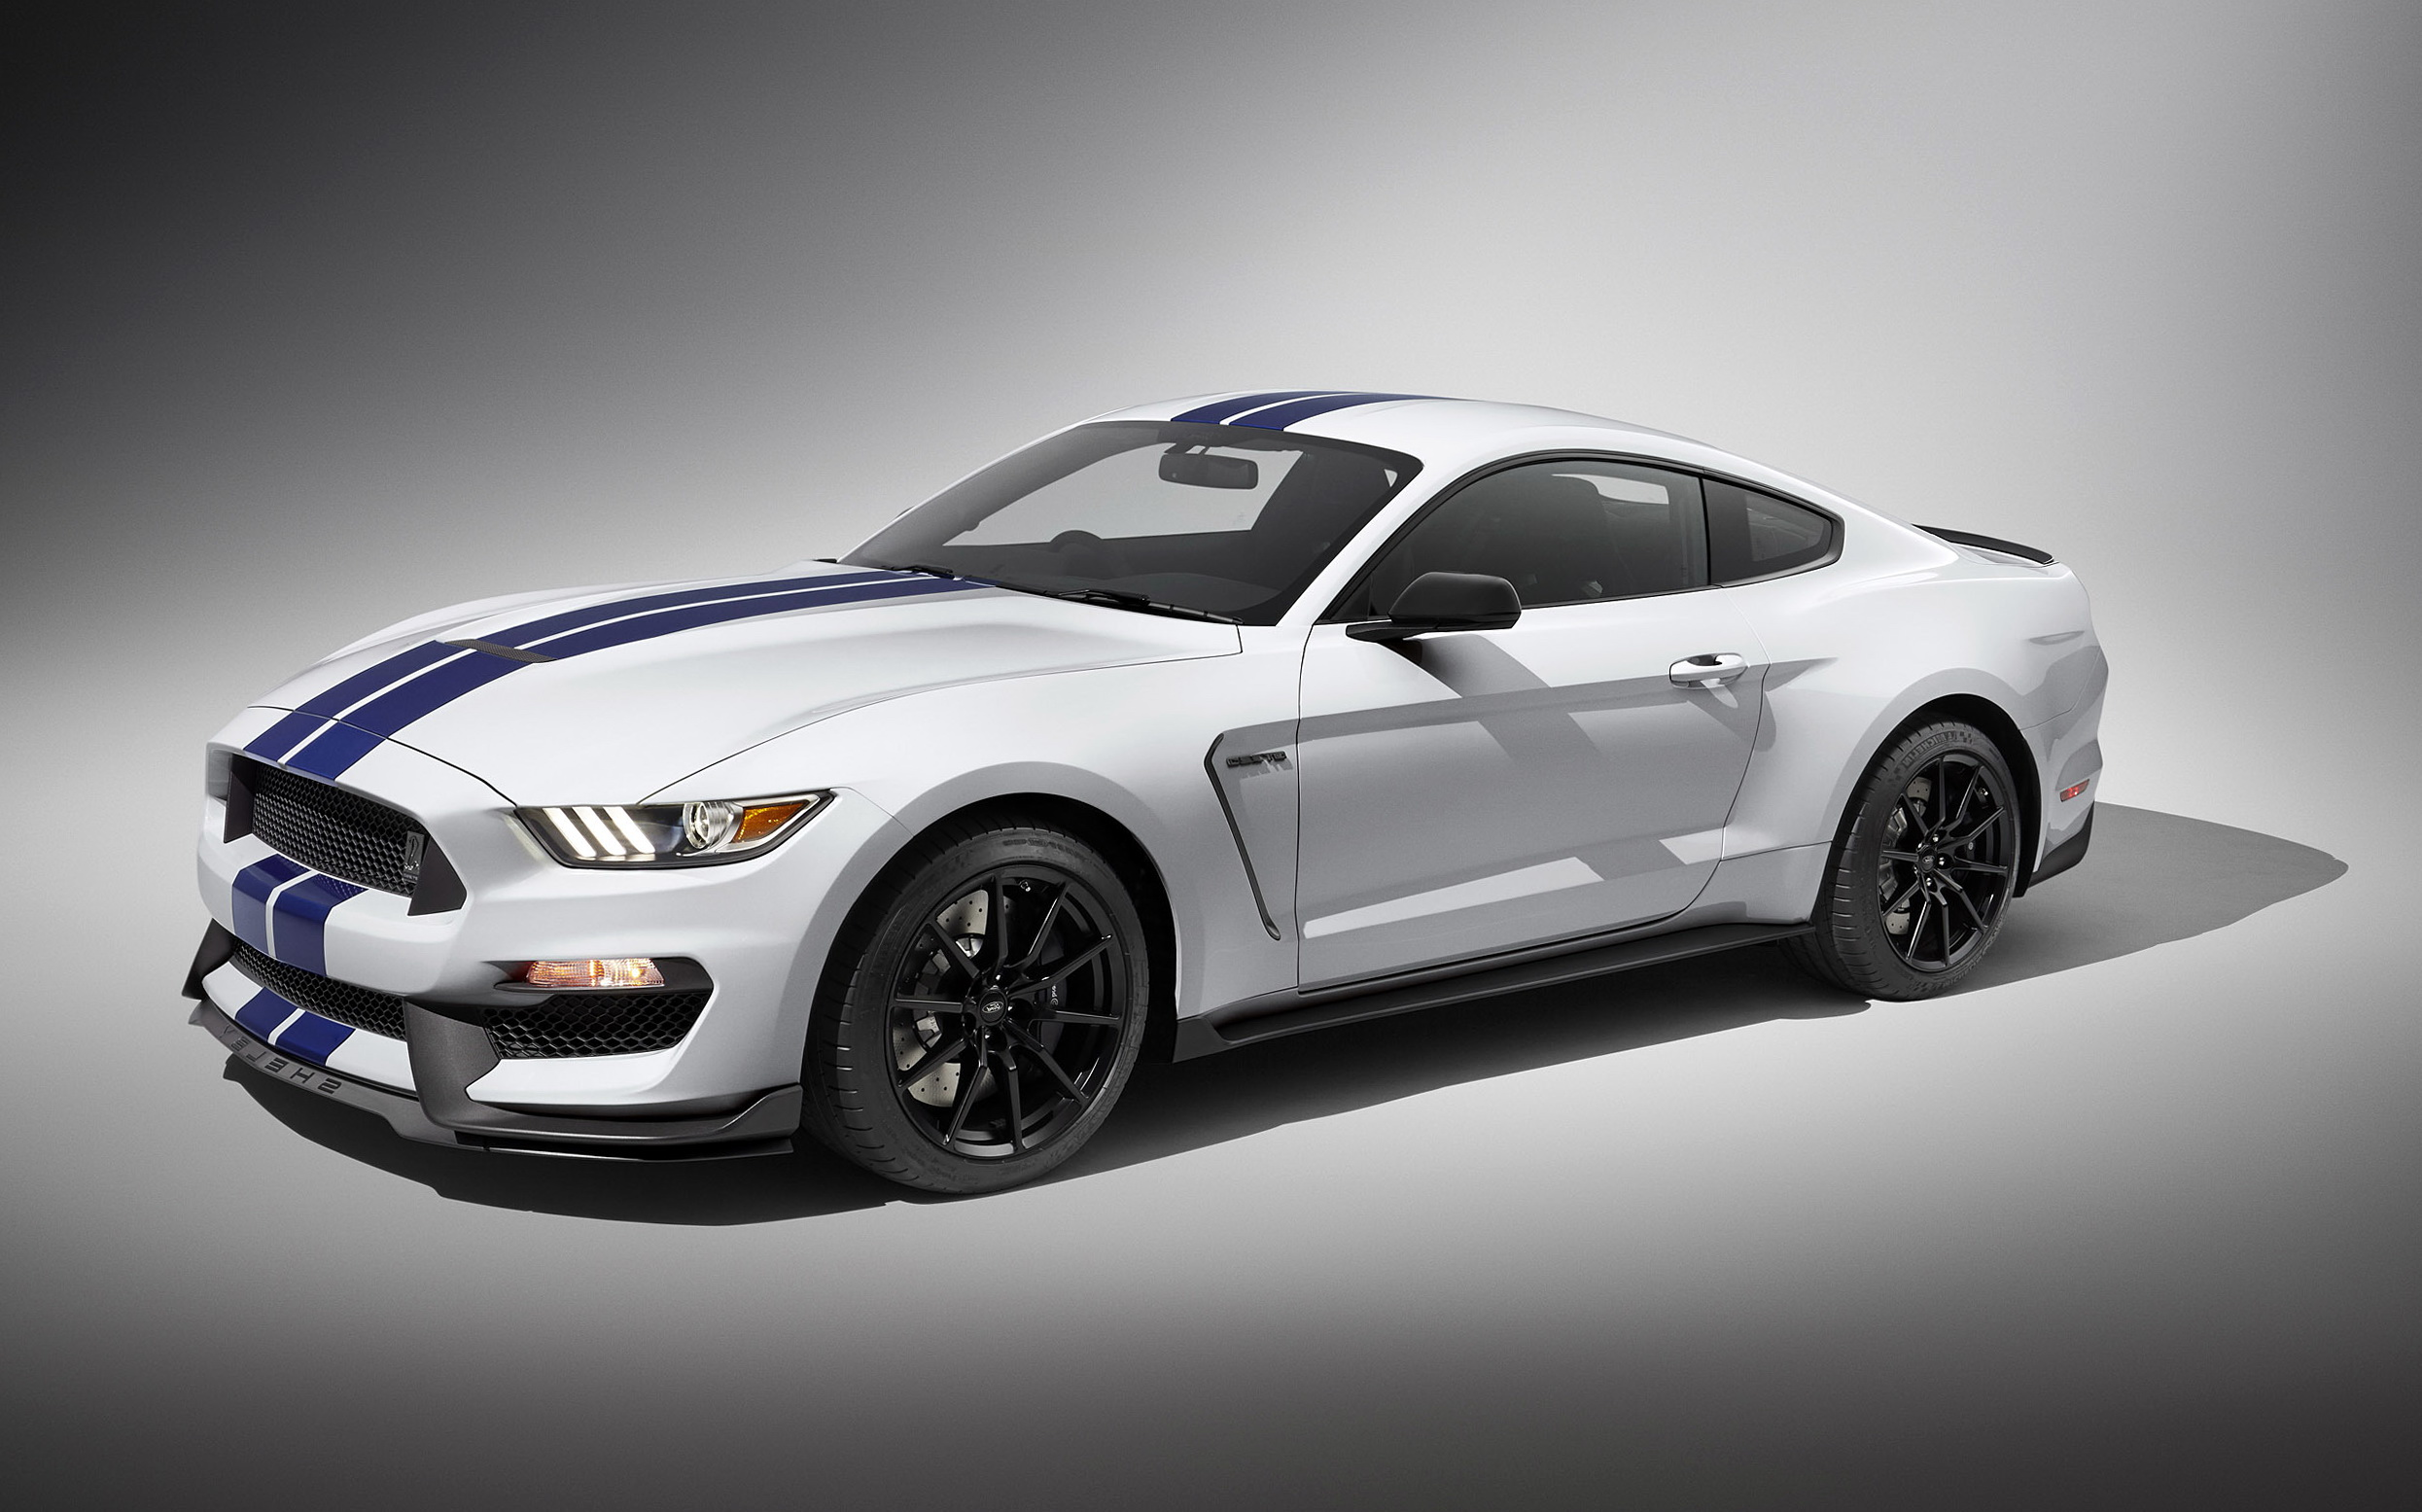 2016 Ford Mustang Shelby Gt350 Wallpaper Automotive Designs 2491x1555